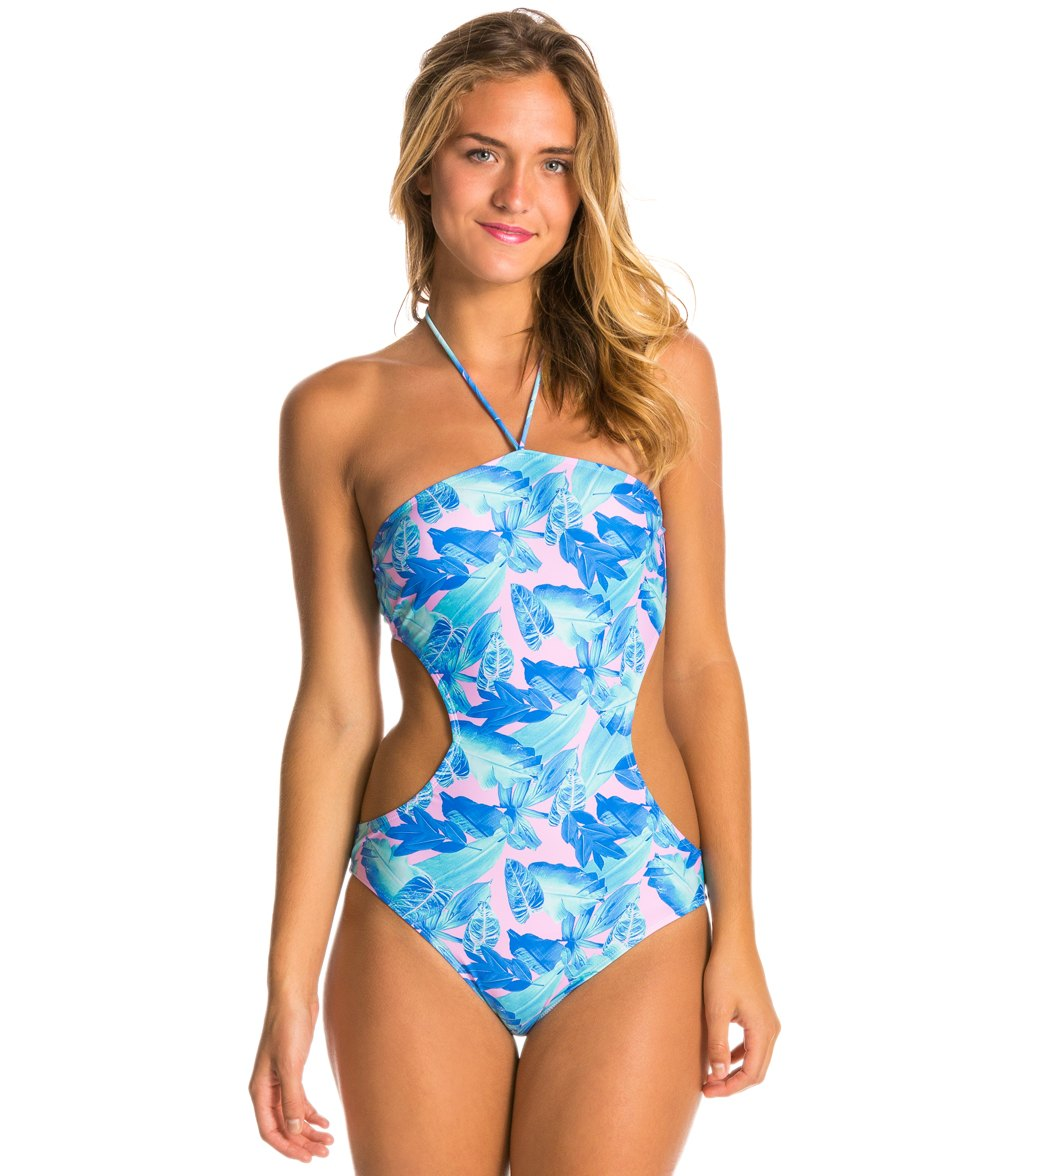 ff0d8b390e2 Motel Palm Glitch Bee Sting One Piece Swimsuit at SwimOutlet.com ...